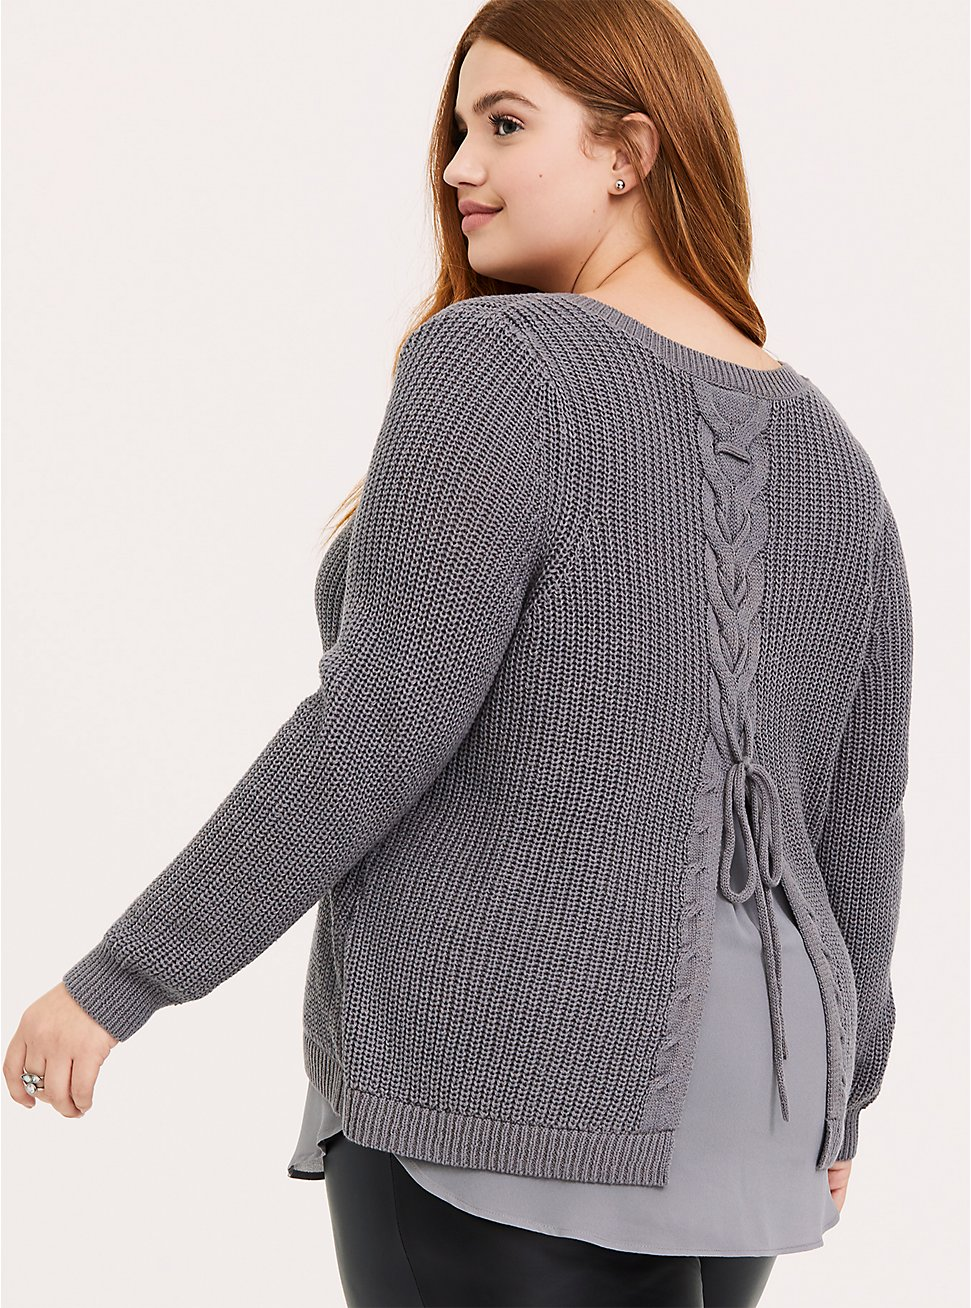 Grey Knit Back Lace-Up 2fer Tunic Sweater, GREY, hi-res